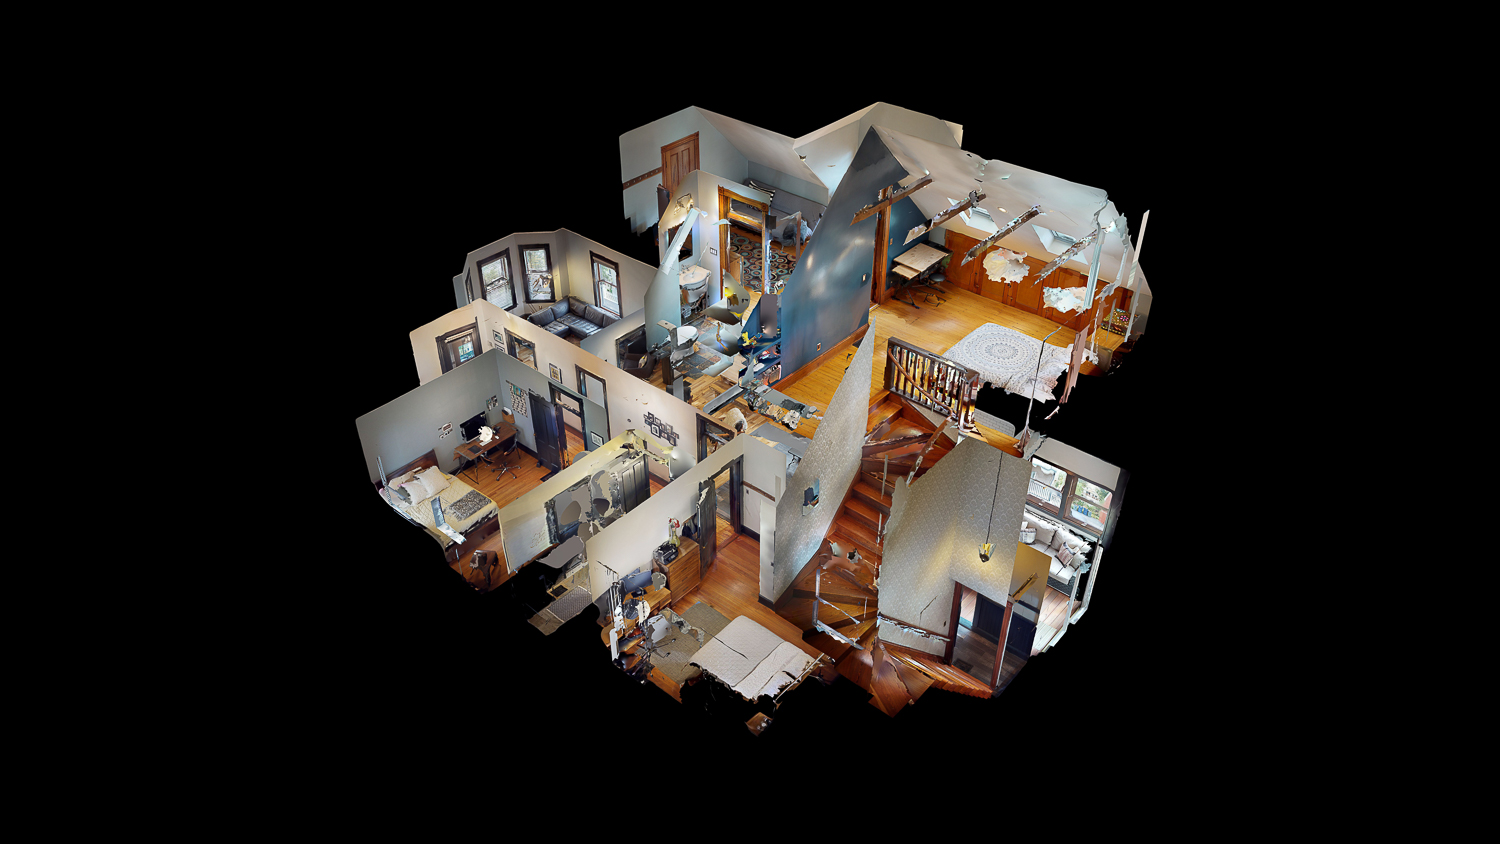 Matterport 3D Virtual Tours - Give your listing presentations a competitive edge and set yourself apart from the competition with our 3D virtual tours. Our 3D tours will help you engage more buyers and build buzz before the home is even shown.